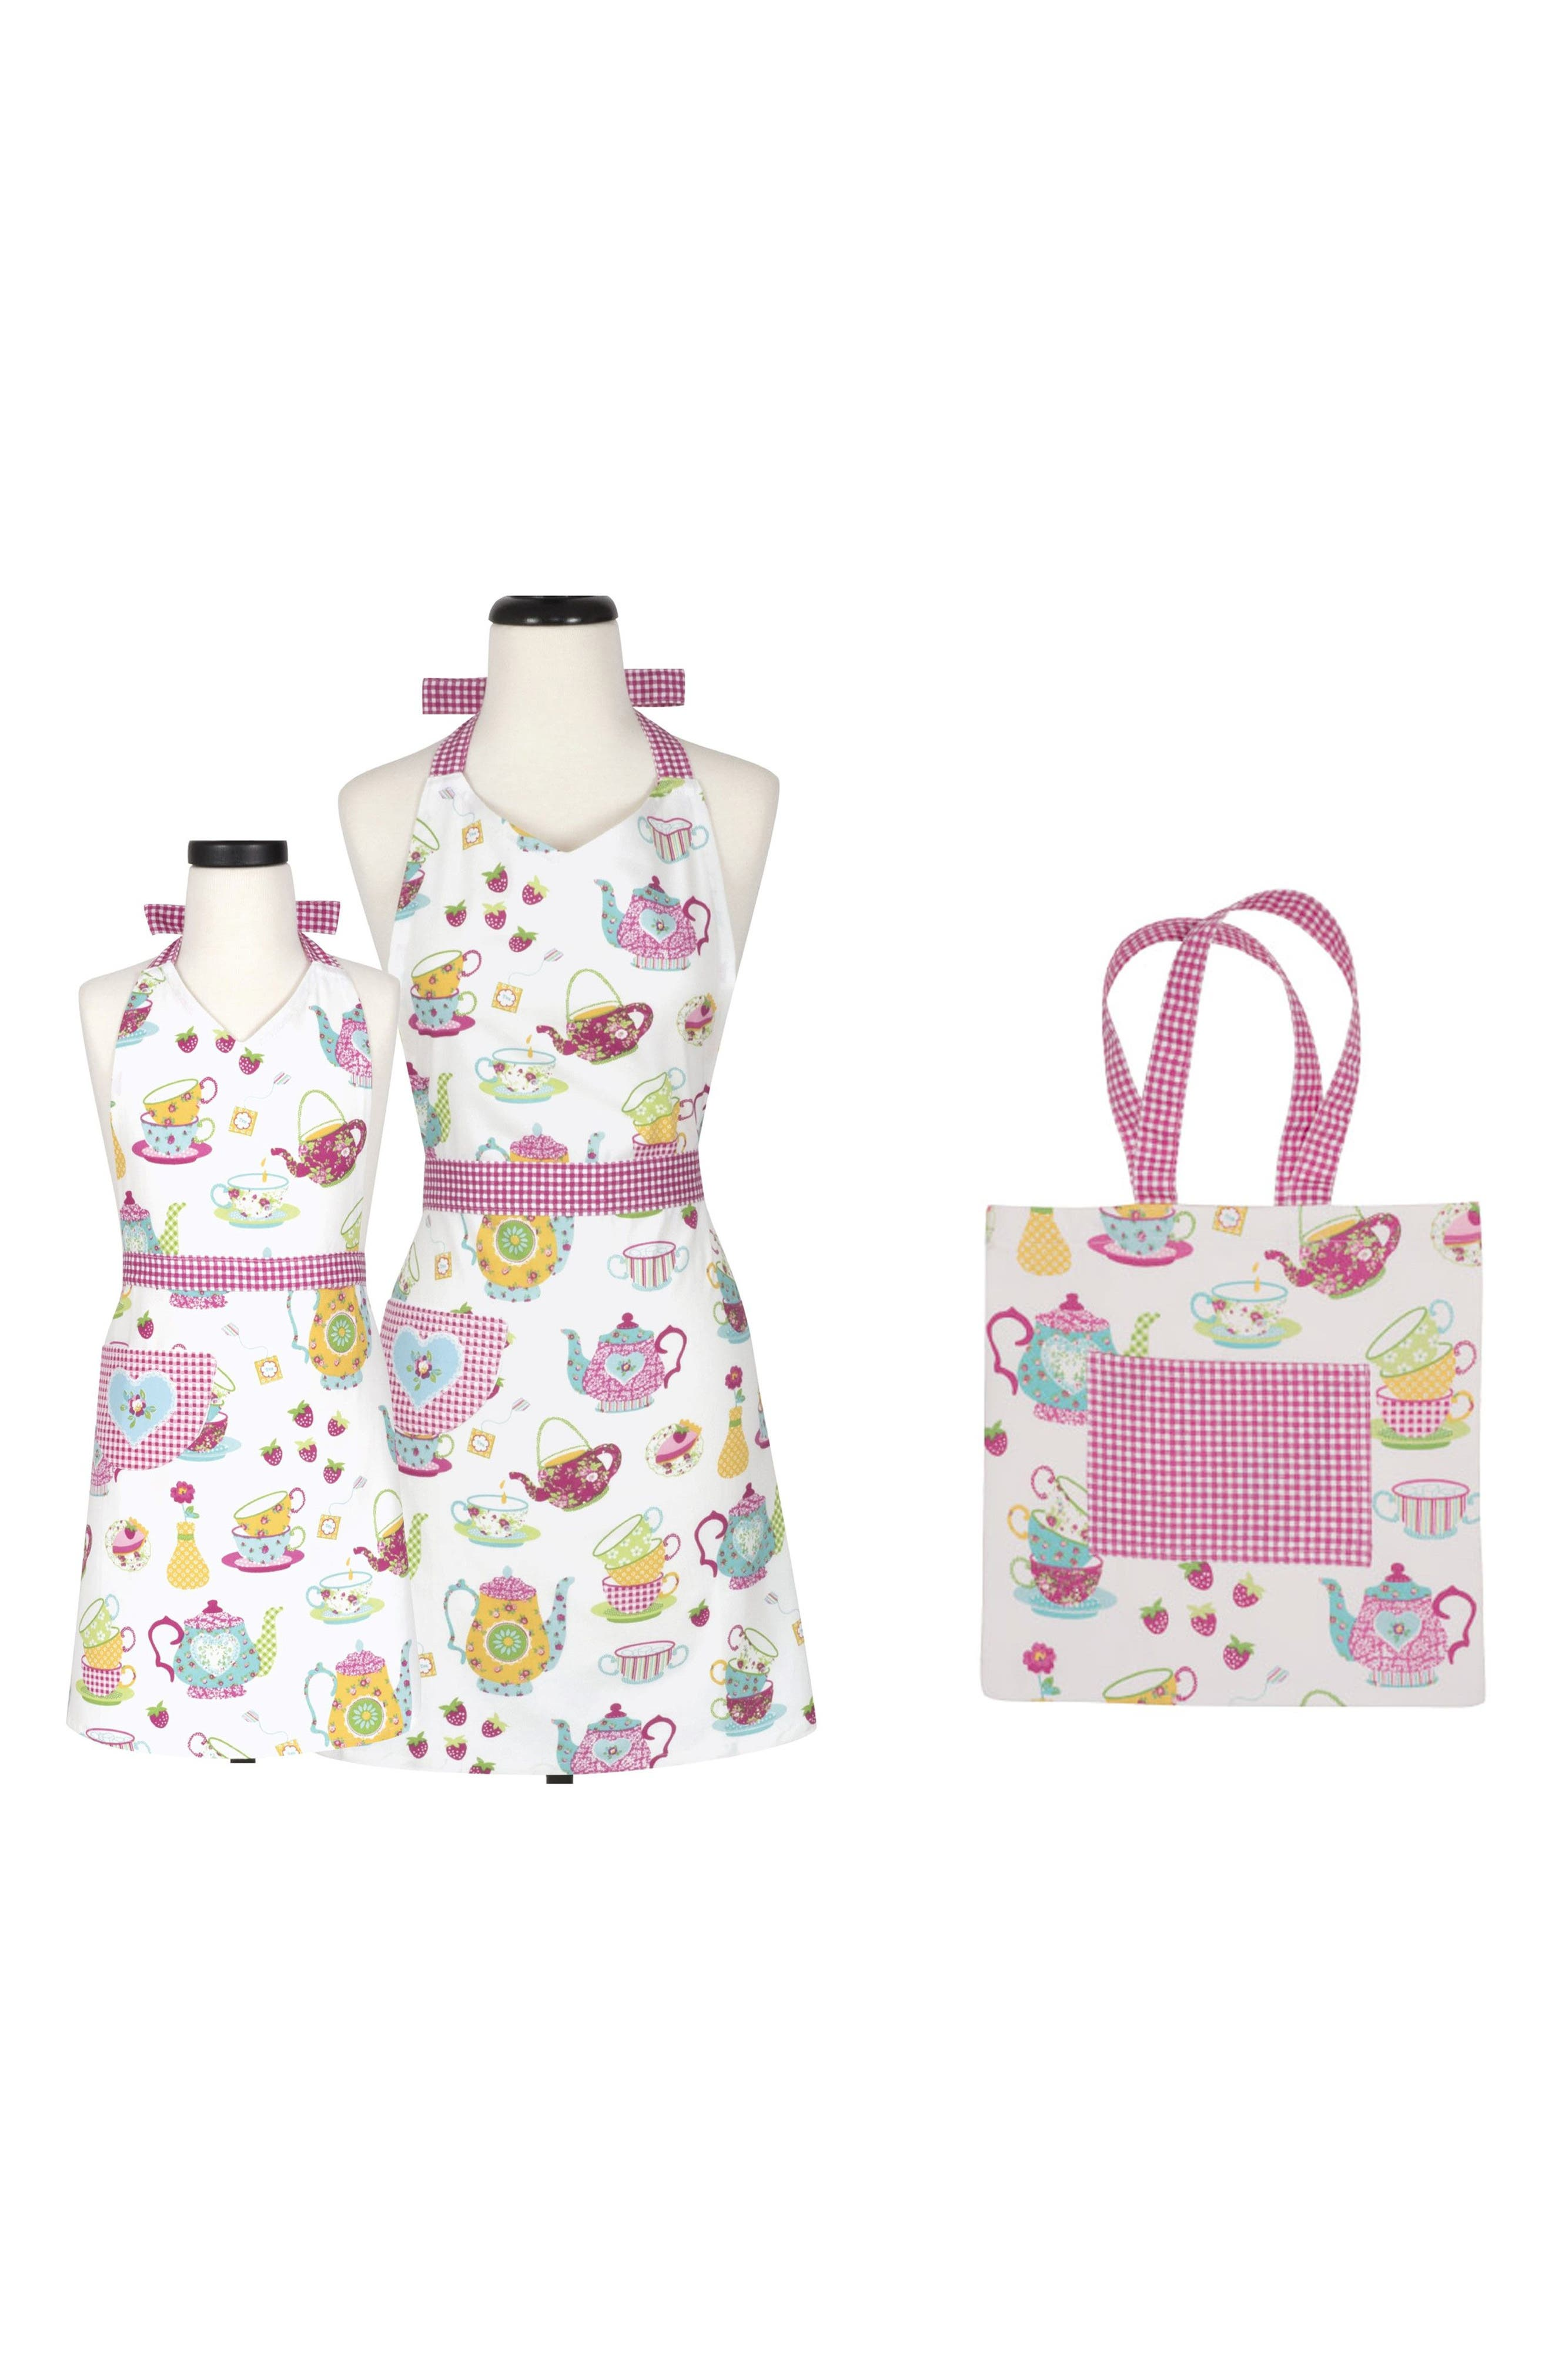 Handstand KidsTeatime Print Adult & Kid Apron Gift Set with Tote